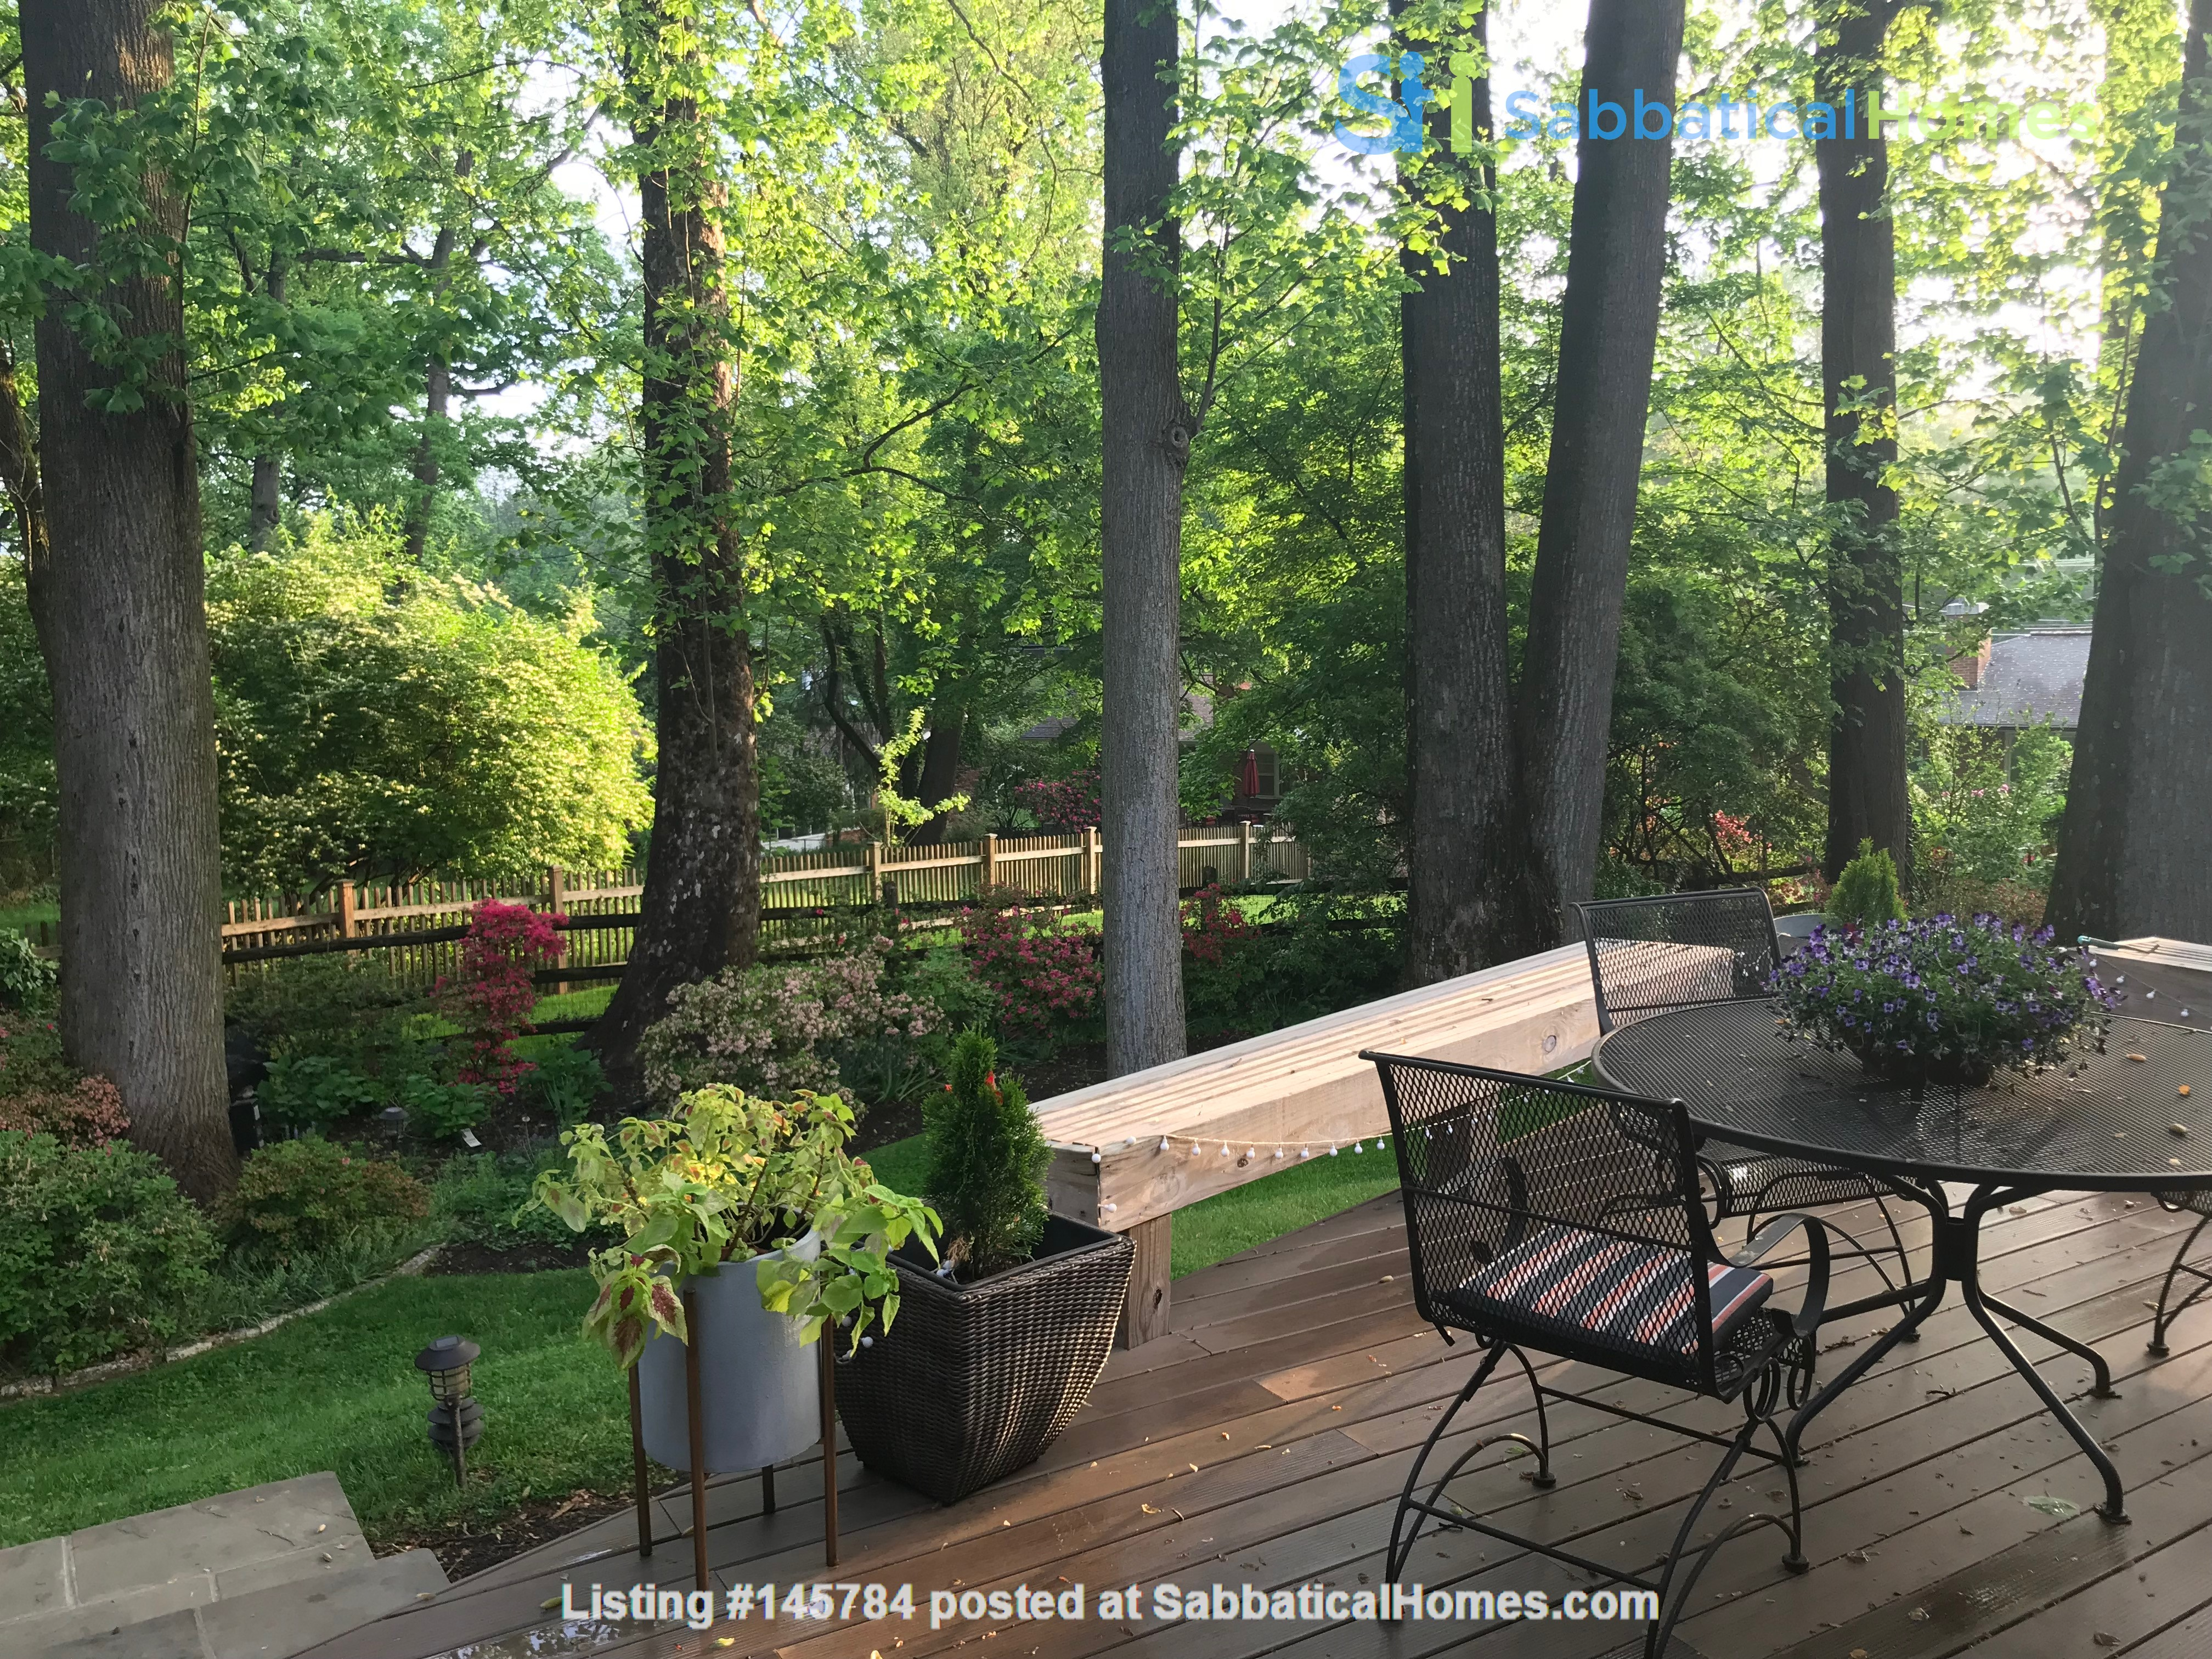 Renovated mid-century modern home (furnished) in desirable Chevy Chase, MD Home Rental in Chevy Chase 7